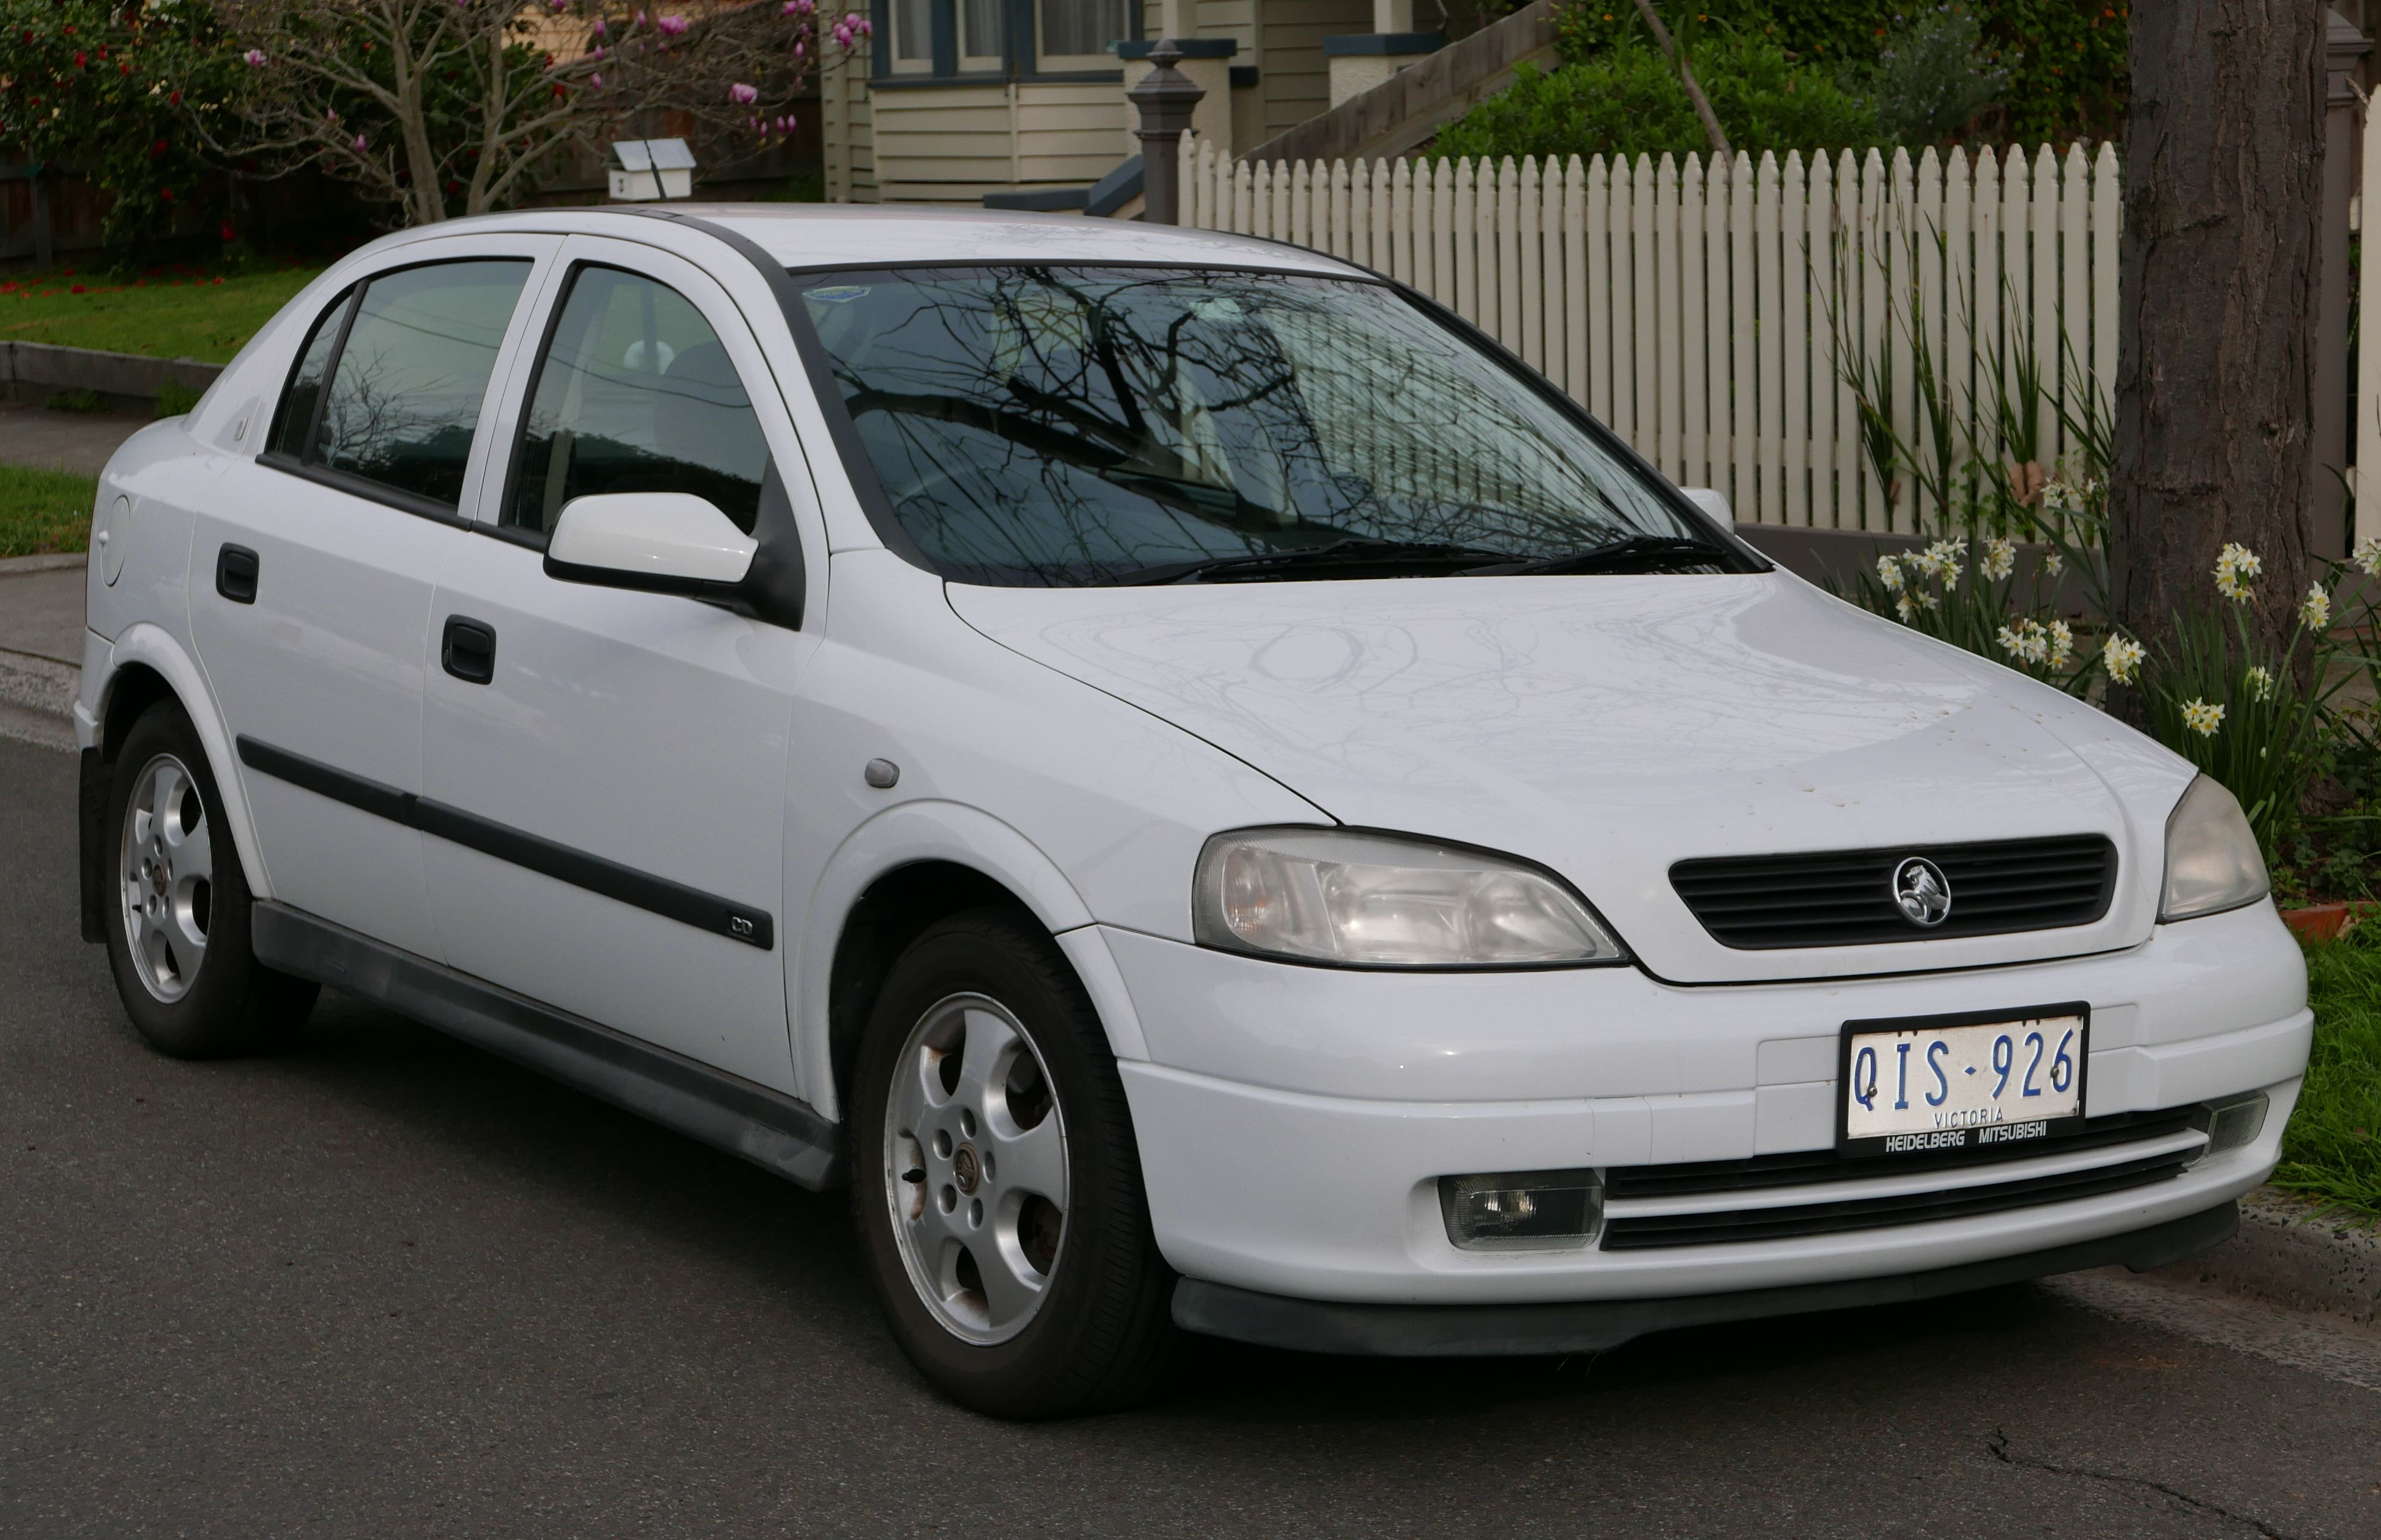 2004 Holden Astra G Service Repair Manual Holden Astra Repair Manuals Holden